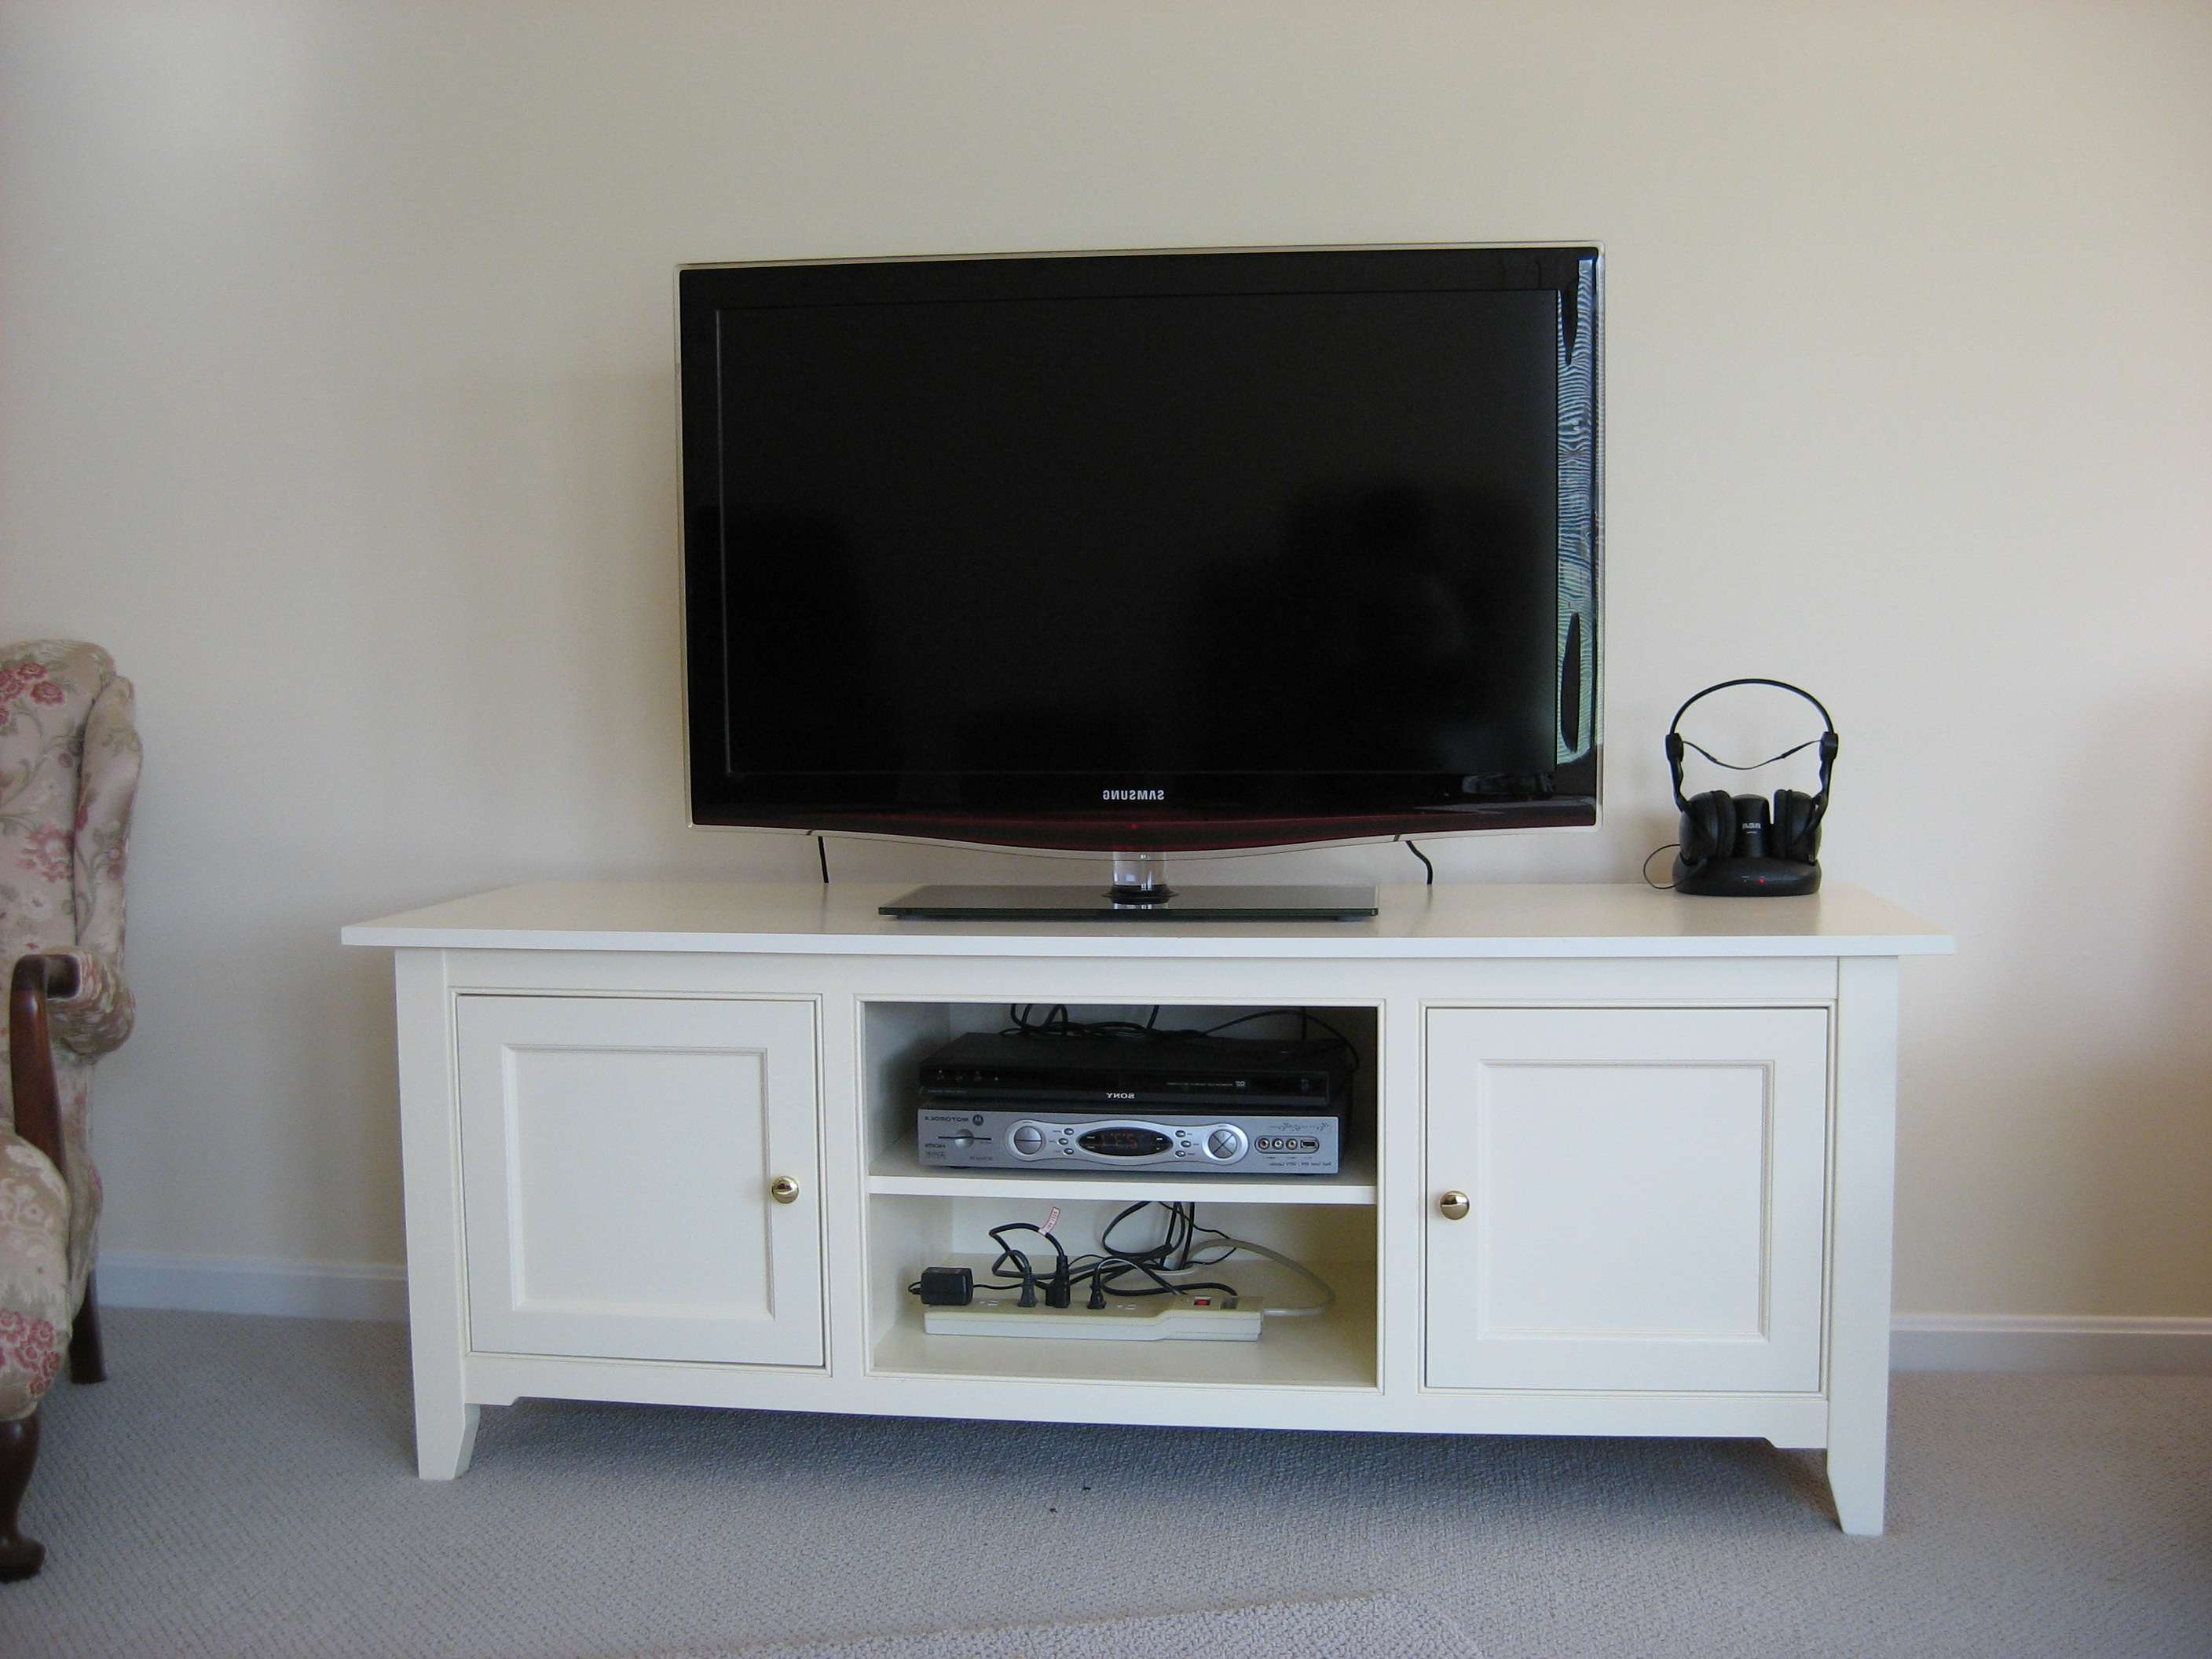 Unique Corner Tv Stands Ideas Stand With Doors Creative Cabinets Pertaining To Unique Corner Tv Stands (View 11 of 20)